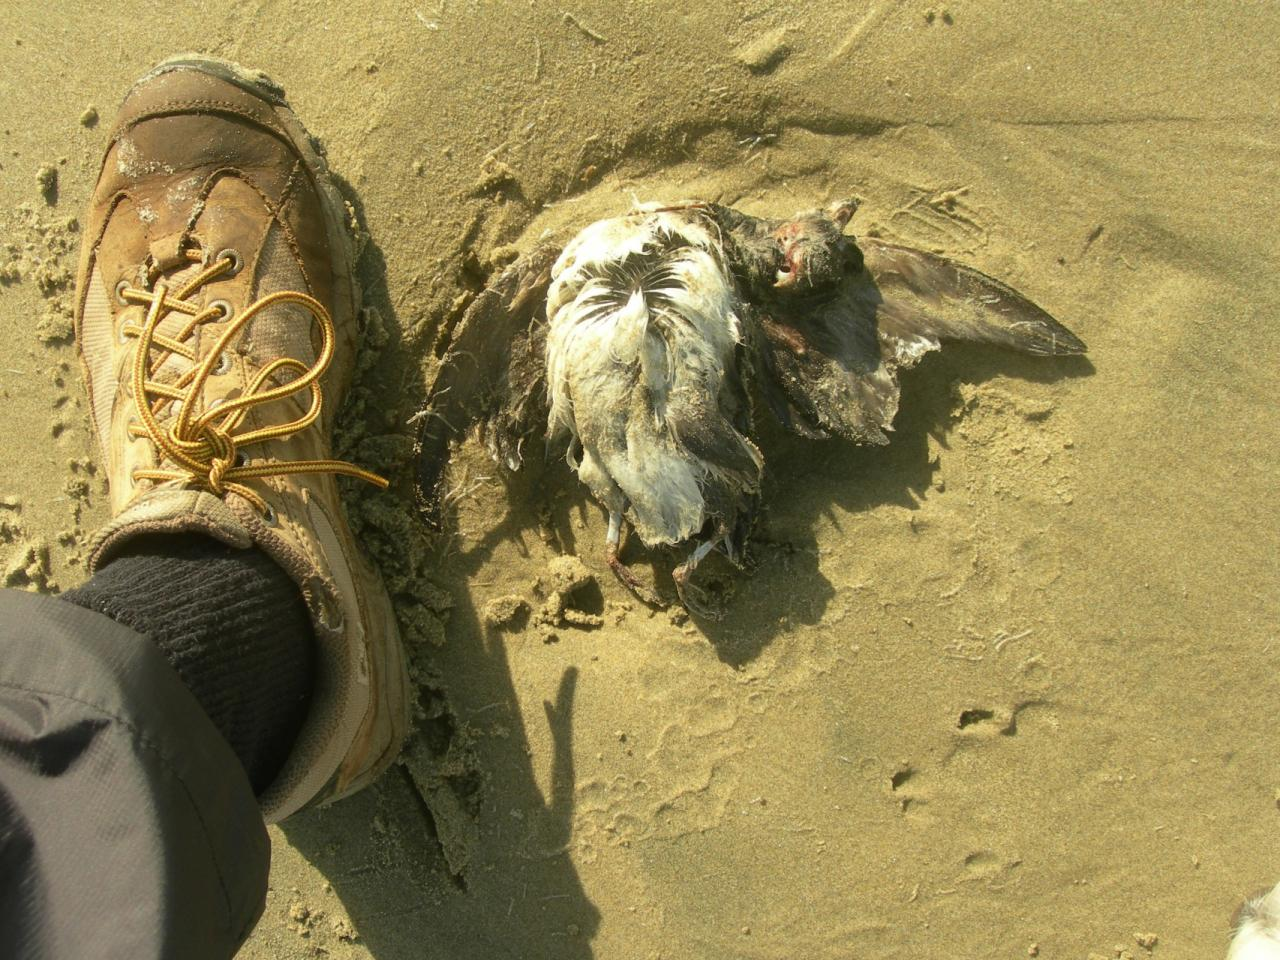 Bird seen dead on the beach. White on front, dark (but covered by sand) on back. Probably a small murre.